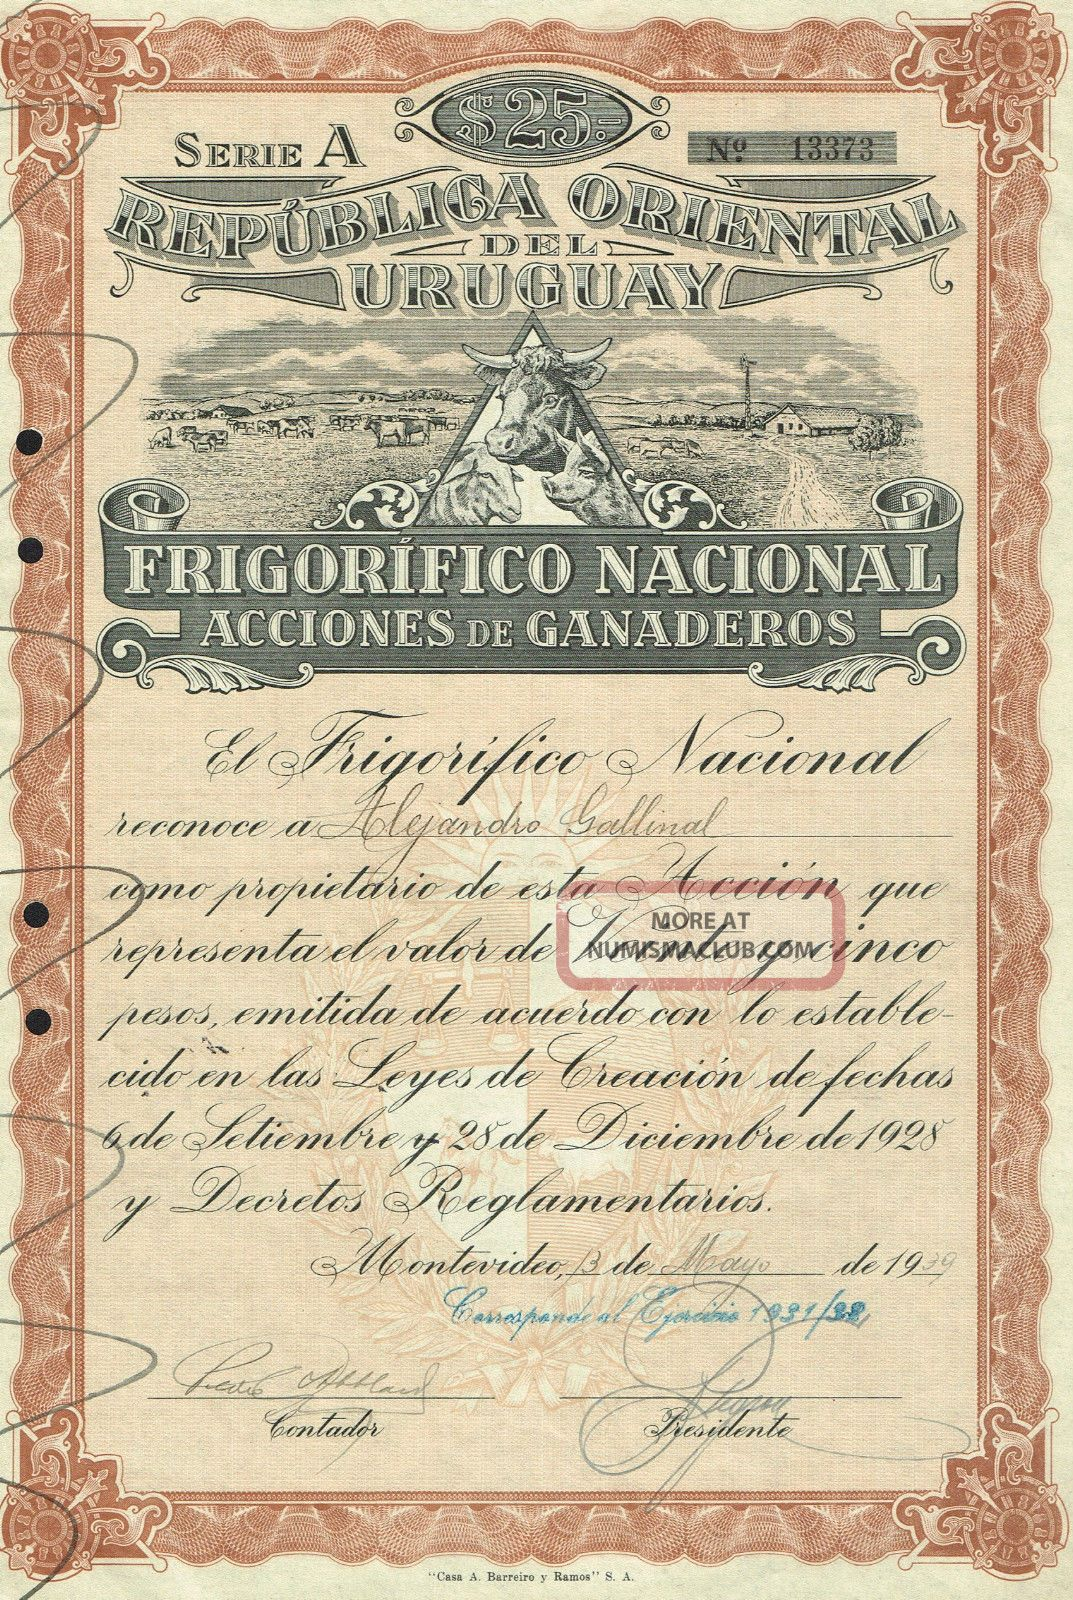 Uruguay Farm & Refrigeration Company Stock Certificate Montevideo 1939 World photo